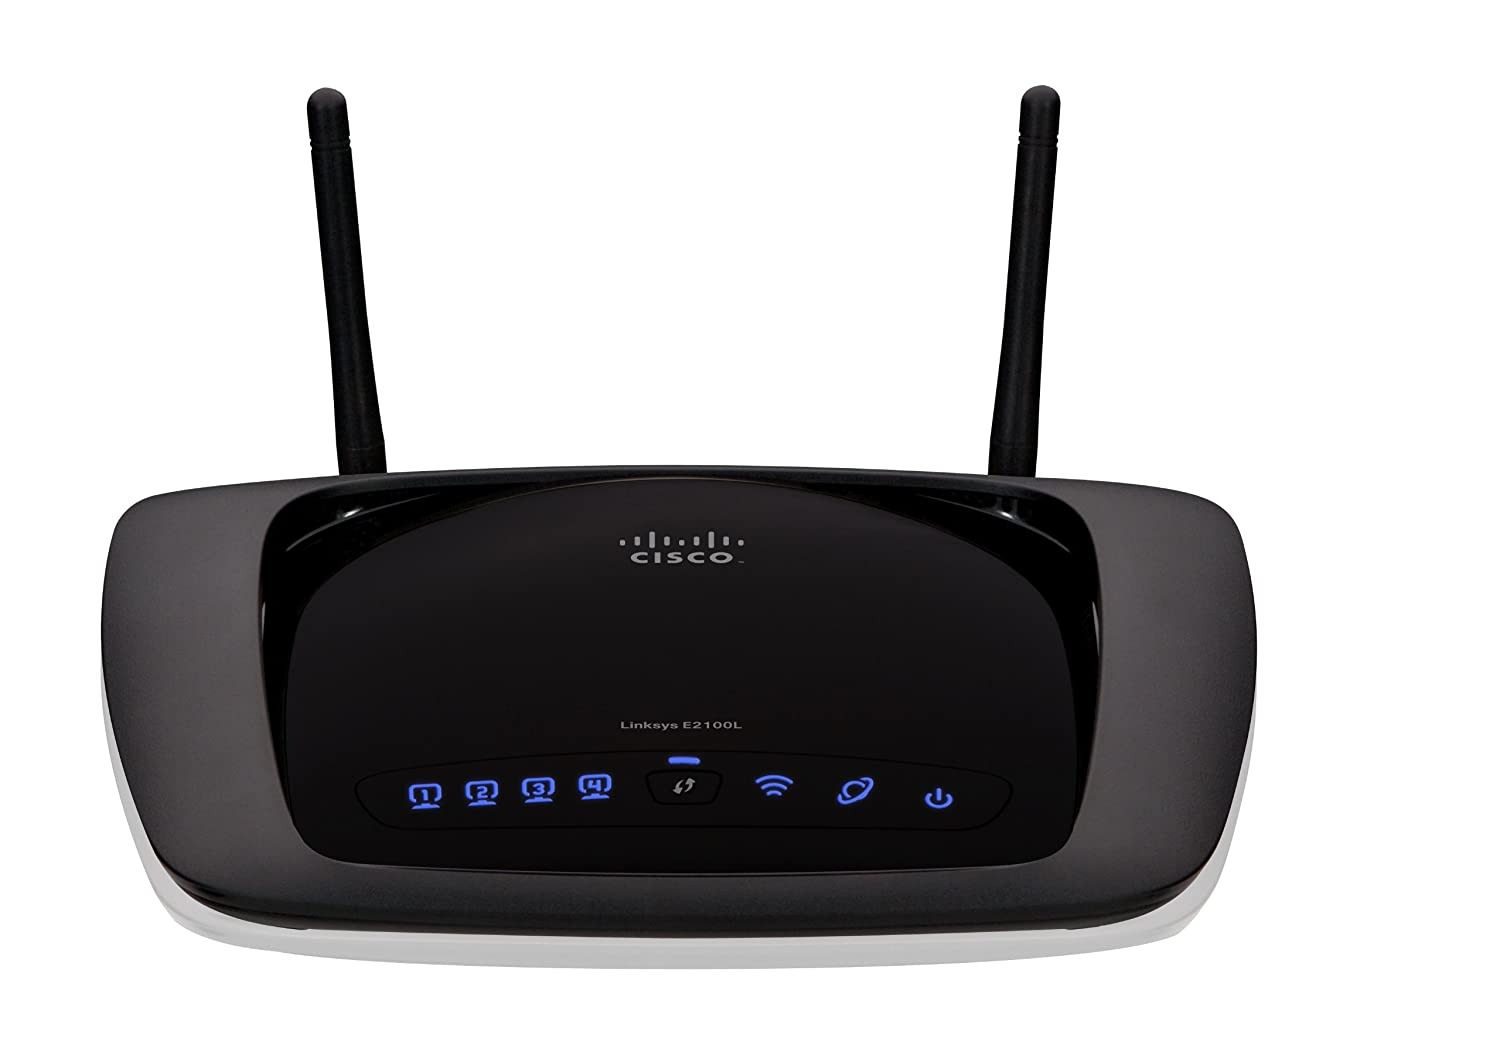 Amazon.com: Cisco-Linksys E2100L Advanced Wireless-N Router: Electronics